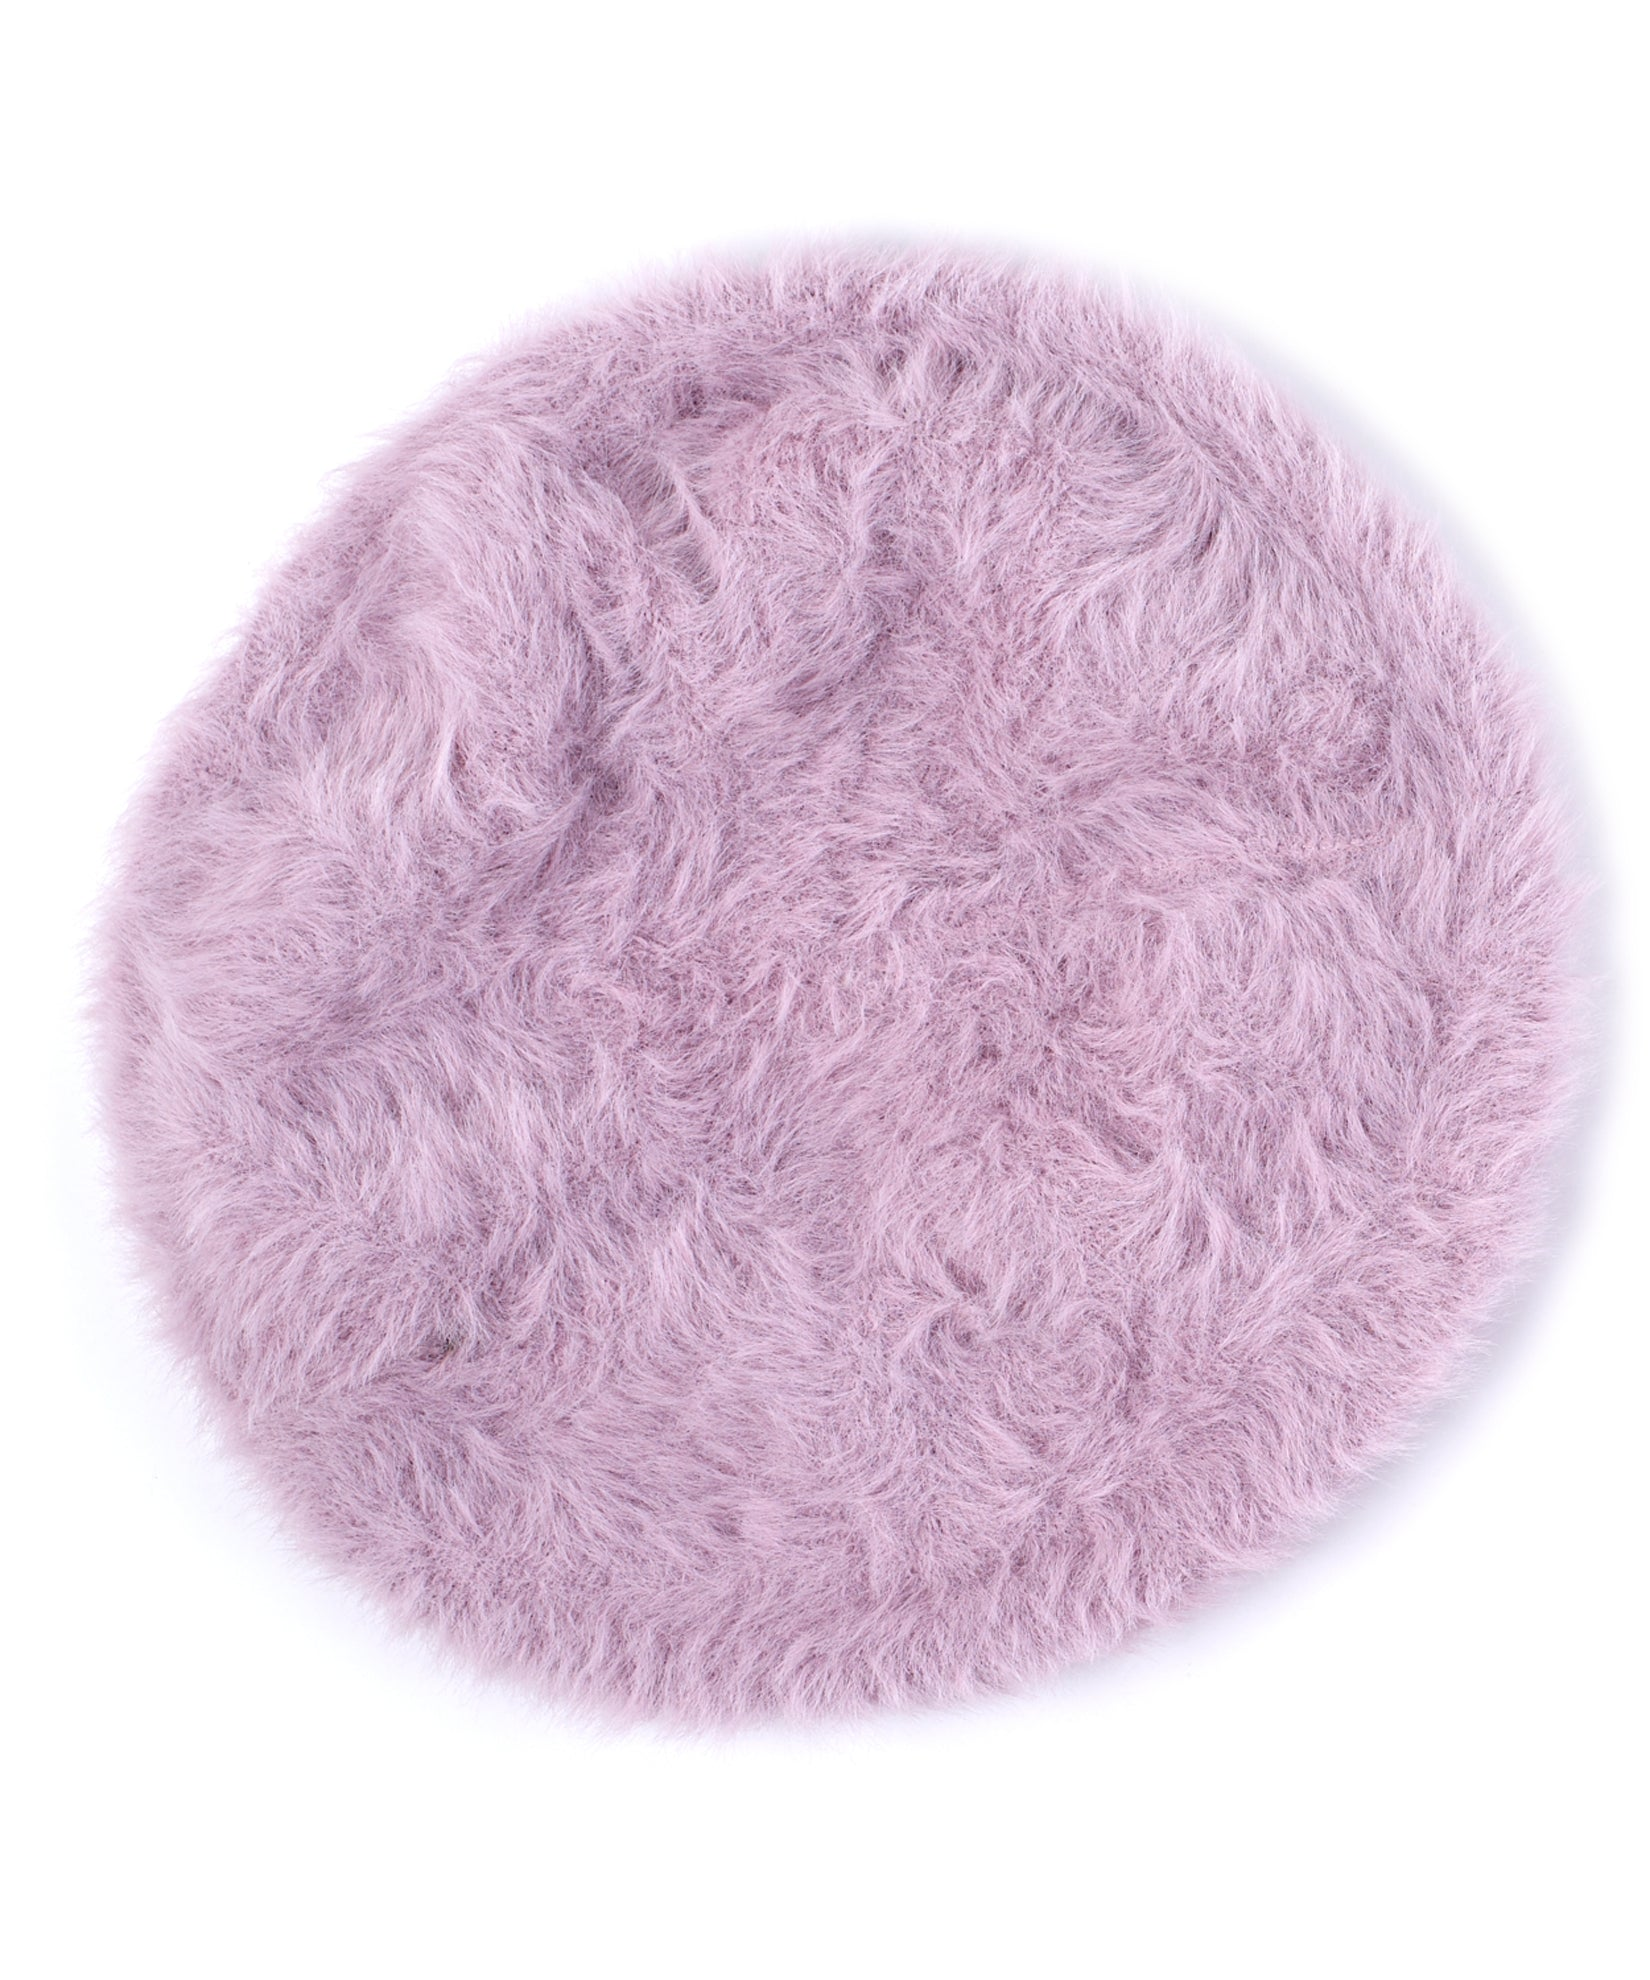 Smoked Lilac - Francoise Beret